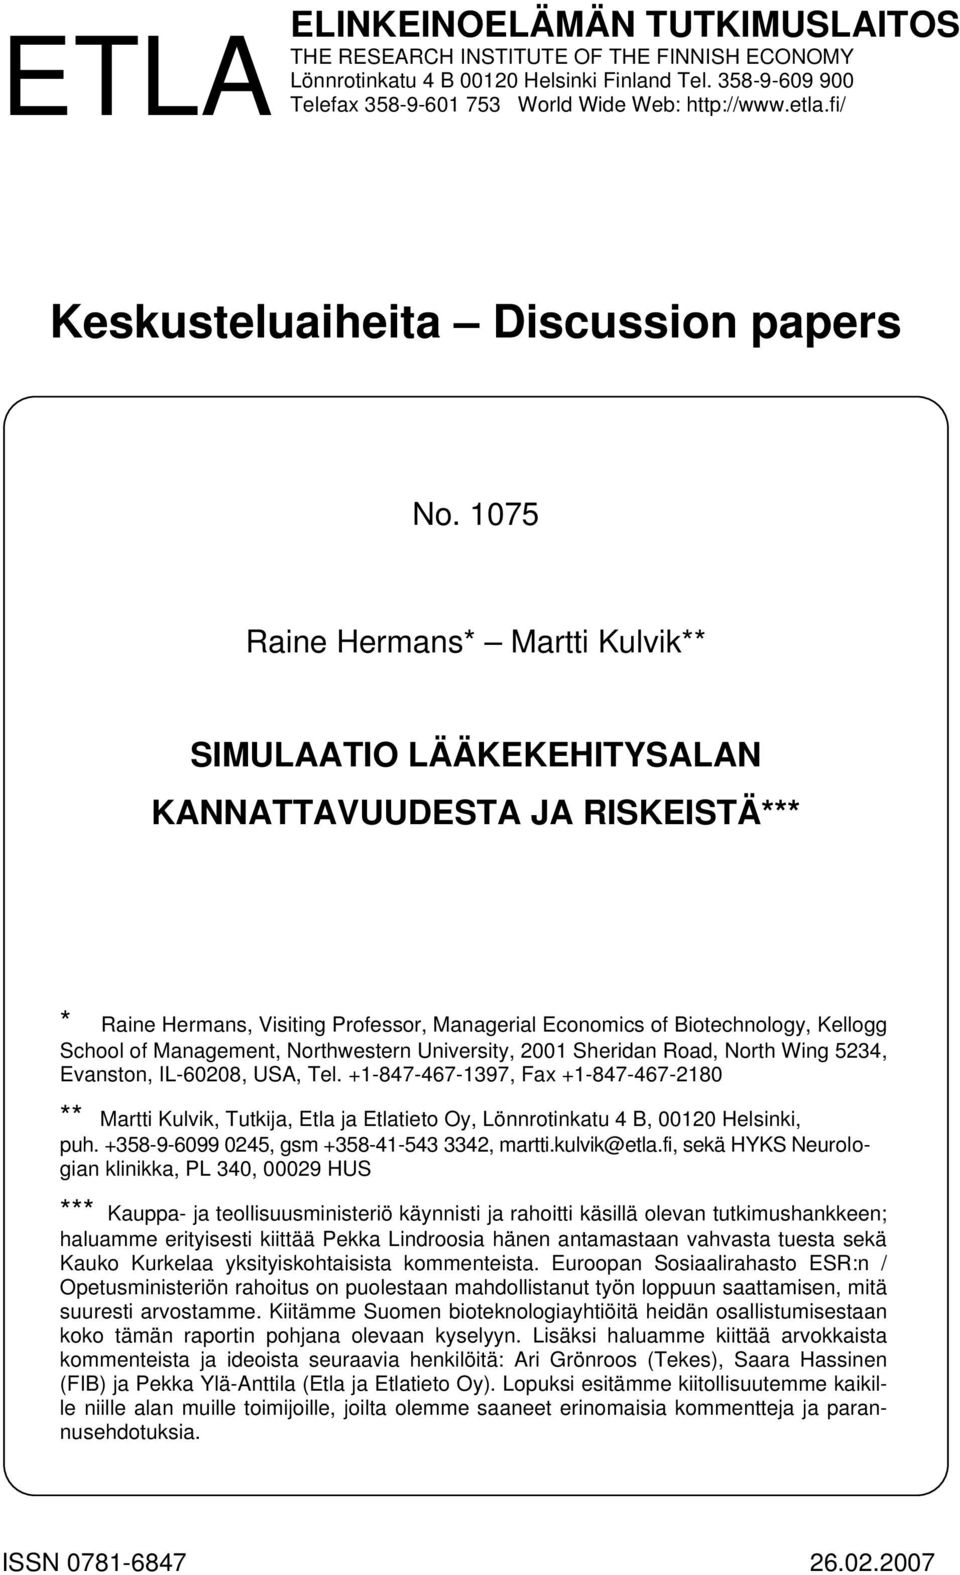 1075 Raine Hermans* Martti Kulvik** SIMULAATIO LÄÄKEKEHITYSALAN KANNATTAVUUDESTA JA RISKEISTÄ*** * Raine Hermans, Visiting Professor, Managerial Economics of Biotechnology, Kellogg School of